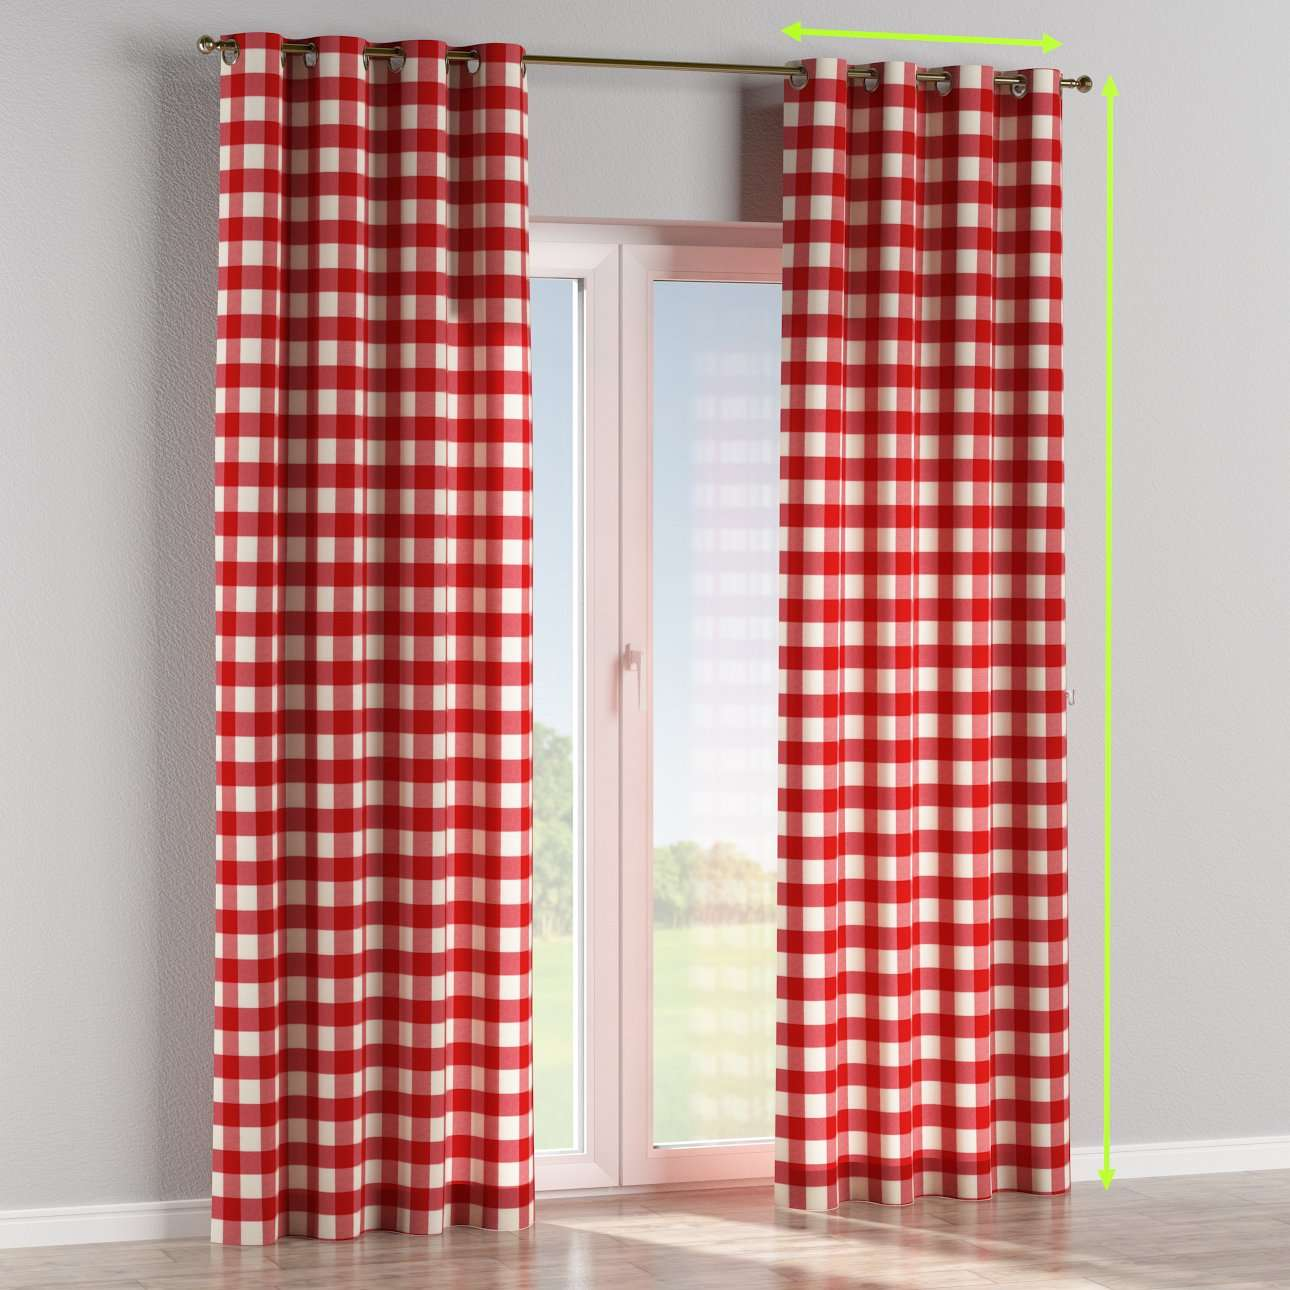 Eyelet lined curtains in collection Quadro, fabric: 136-18